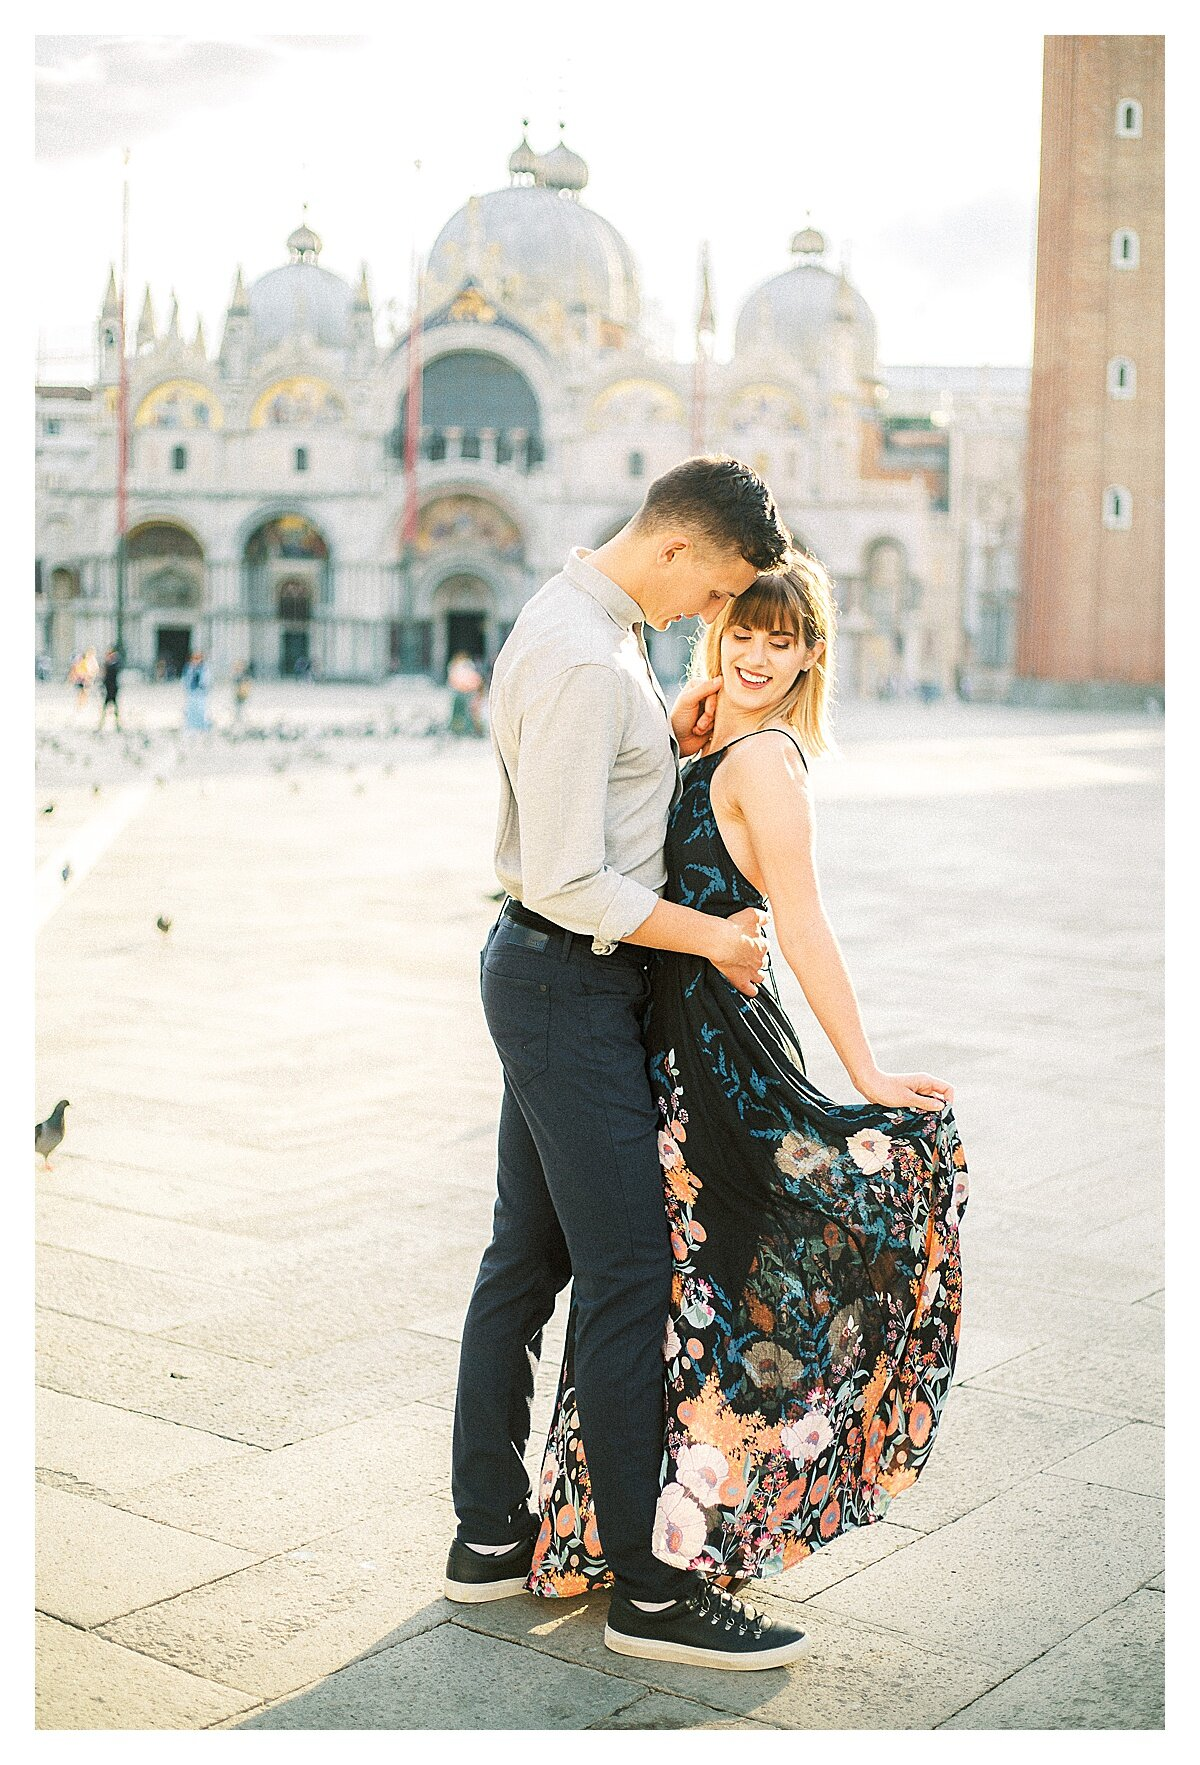 VENICE-COUPLE-PHOTOSHOOT-film-fuji-400h-stefano-degirmenci_0817.jpg